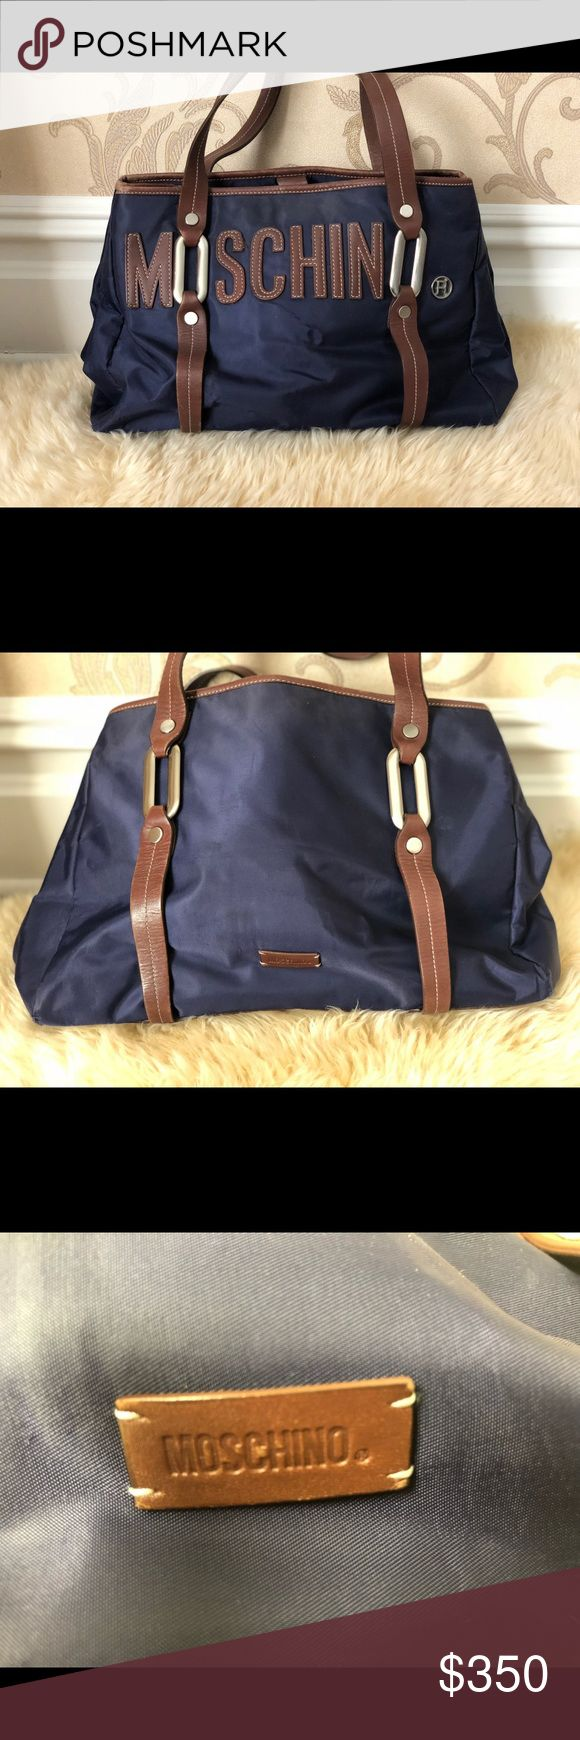 Moschino nylon shoulder bag Moschino brown and navy shoulder bag perfect for everyday Moschino Bags Shoulder Bags